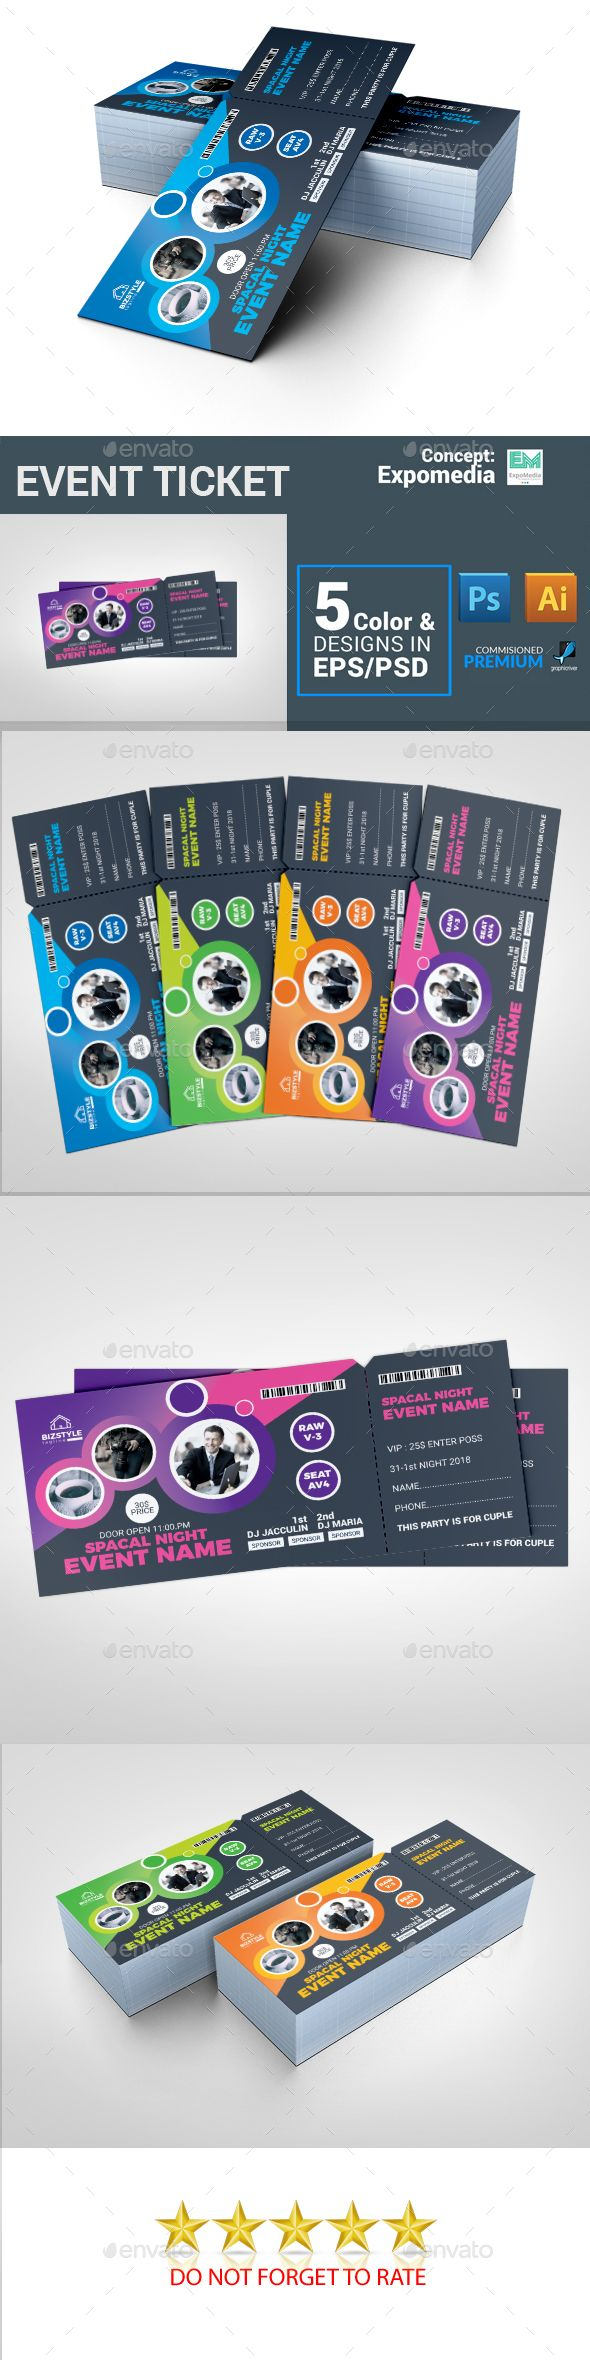 Event Ticket — Photoshop PSD #movie night #event tickets • Download ➝ https://graphicriver.net/item/event-ticket/21176093?ref=pxcr